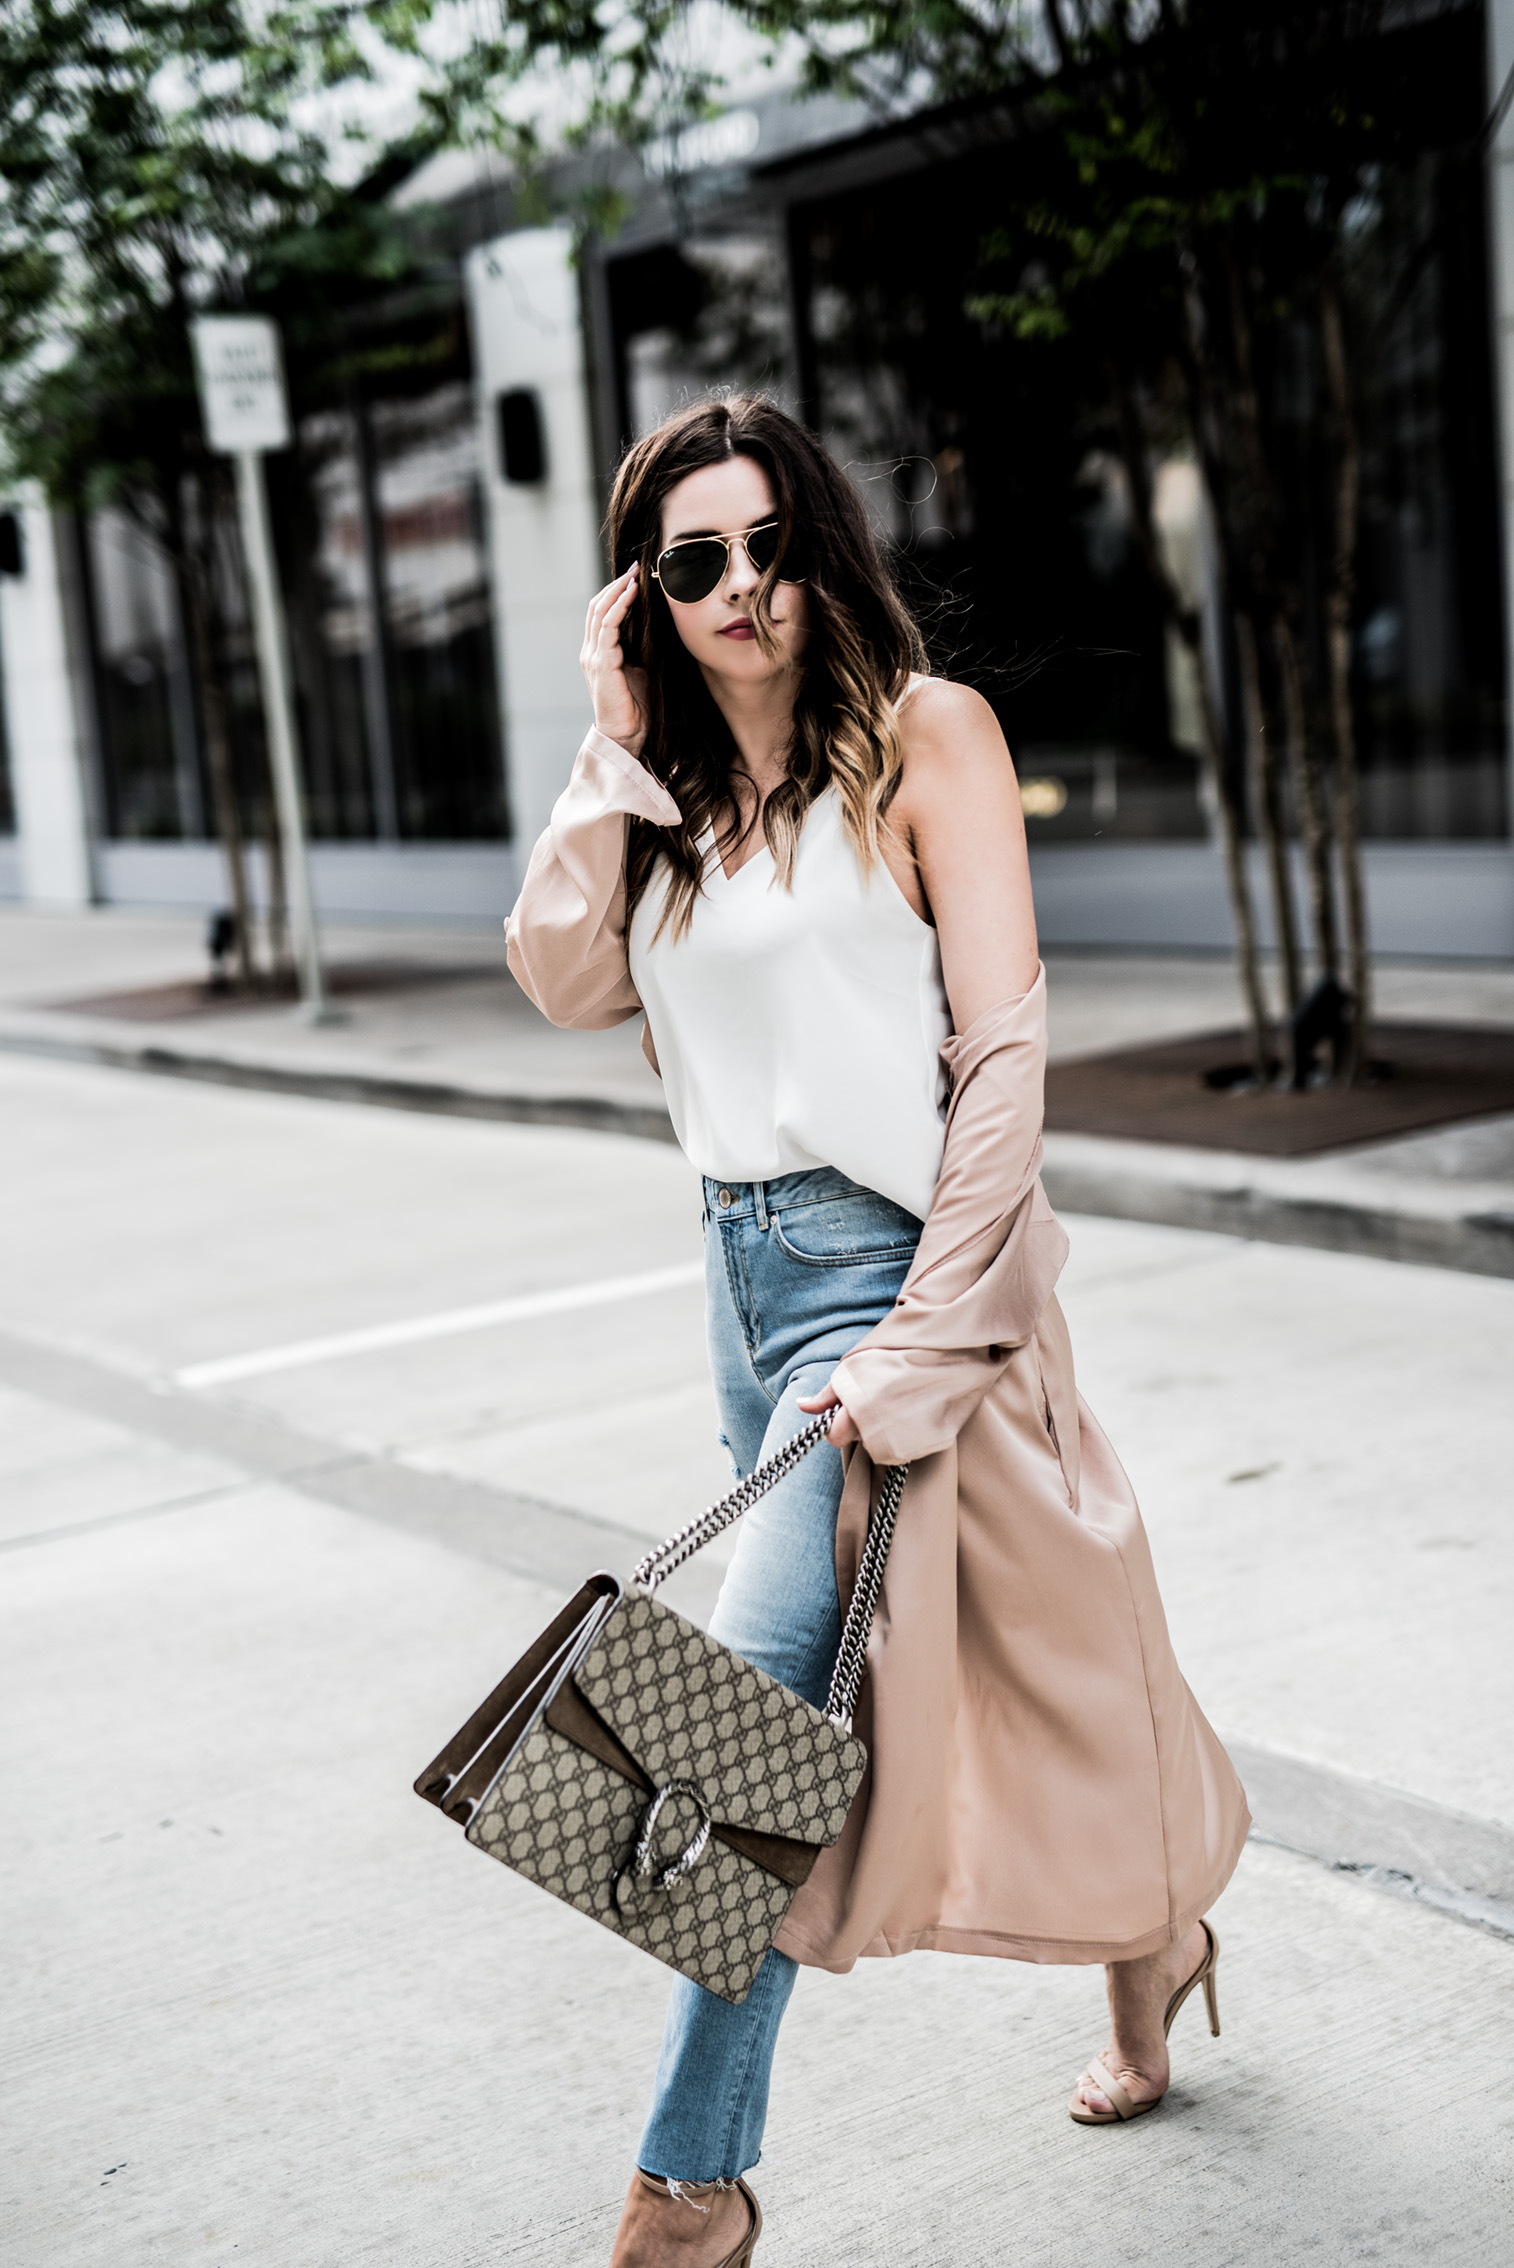 Houston fashion and lifestyle blogger Tiffany Jais | How to layer in the spring time, spring outfit ideas, gucci dionysus bag, straight leg denim jeans, satin duster jacket